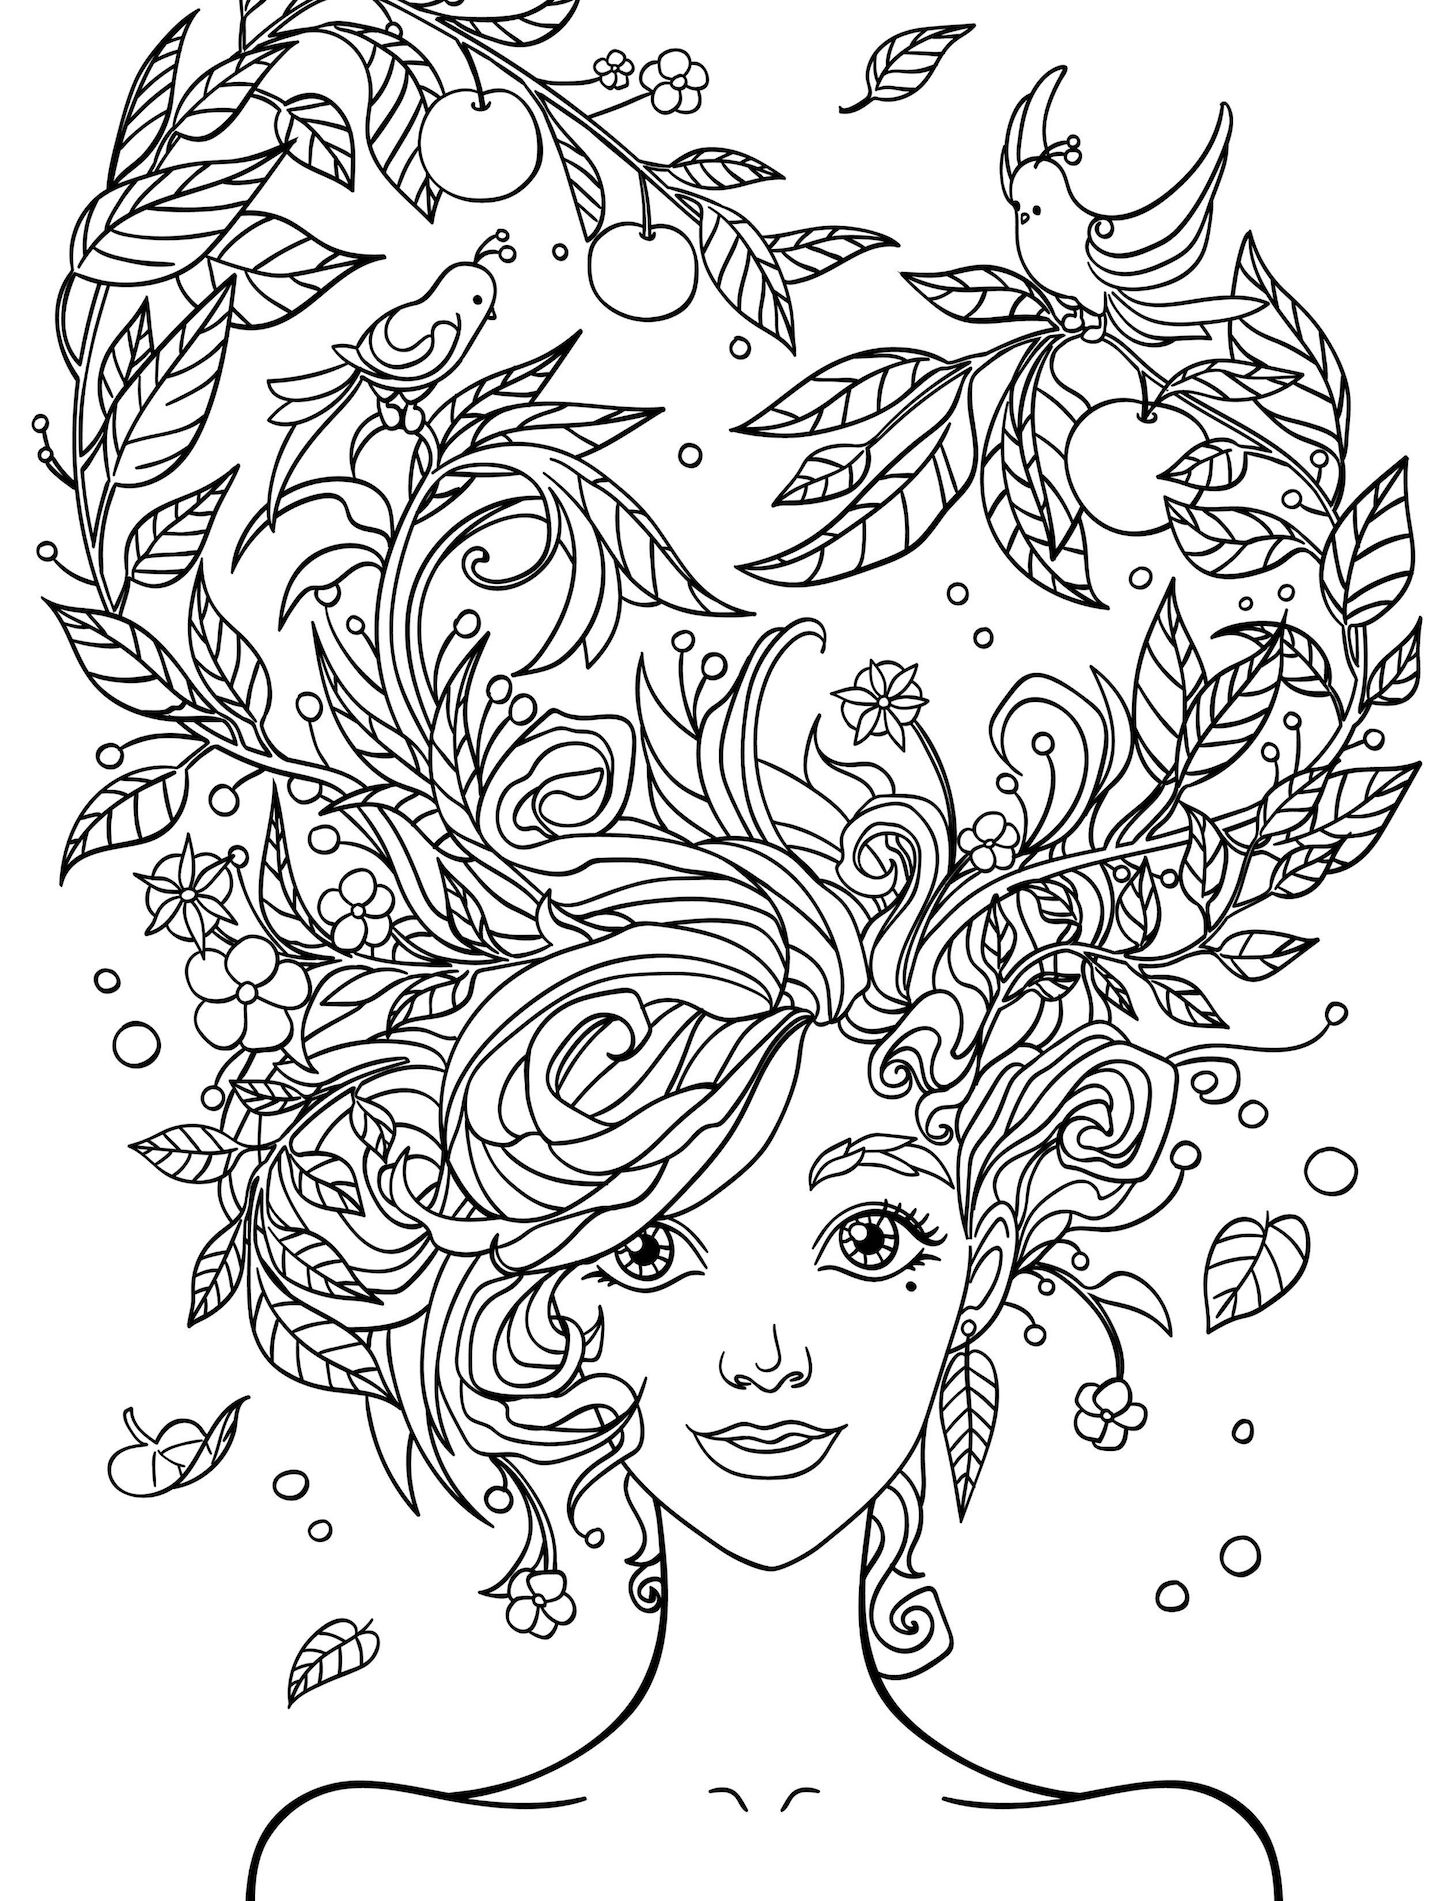 Online Coloring Pages For Adults And Other Themed Coloring ...